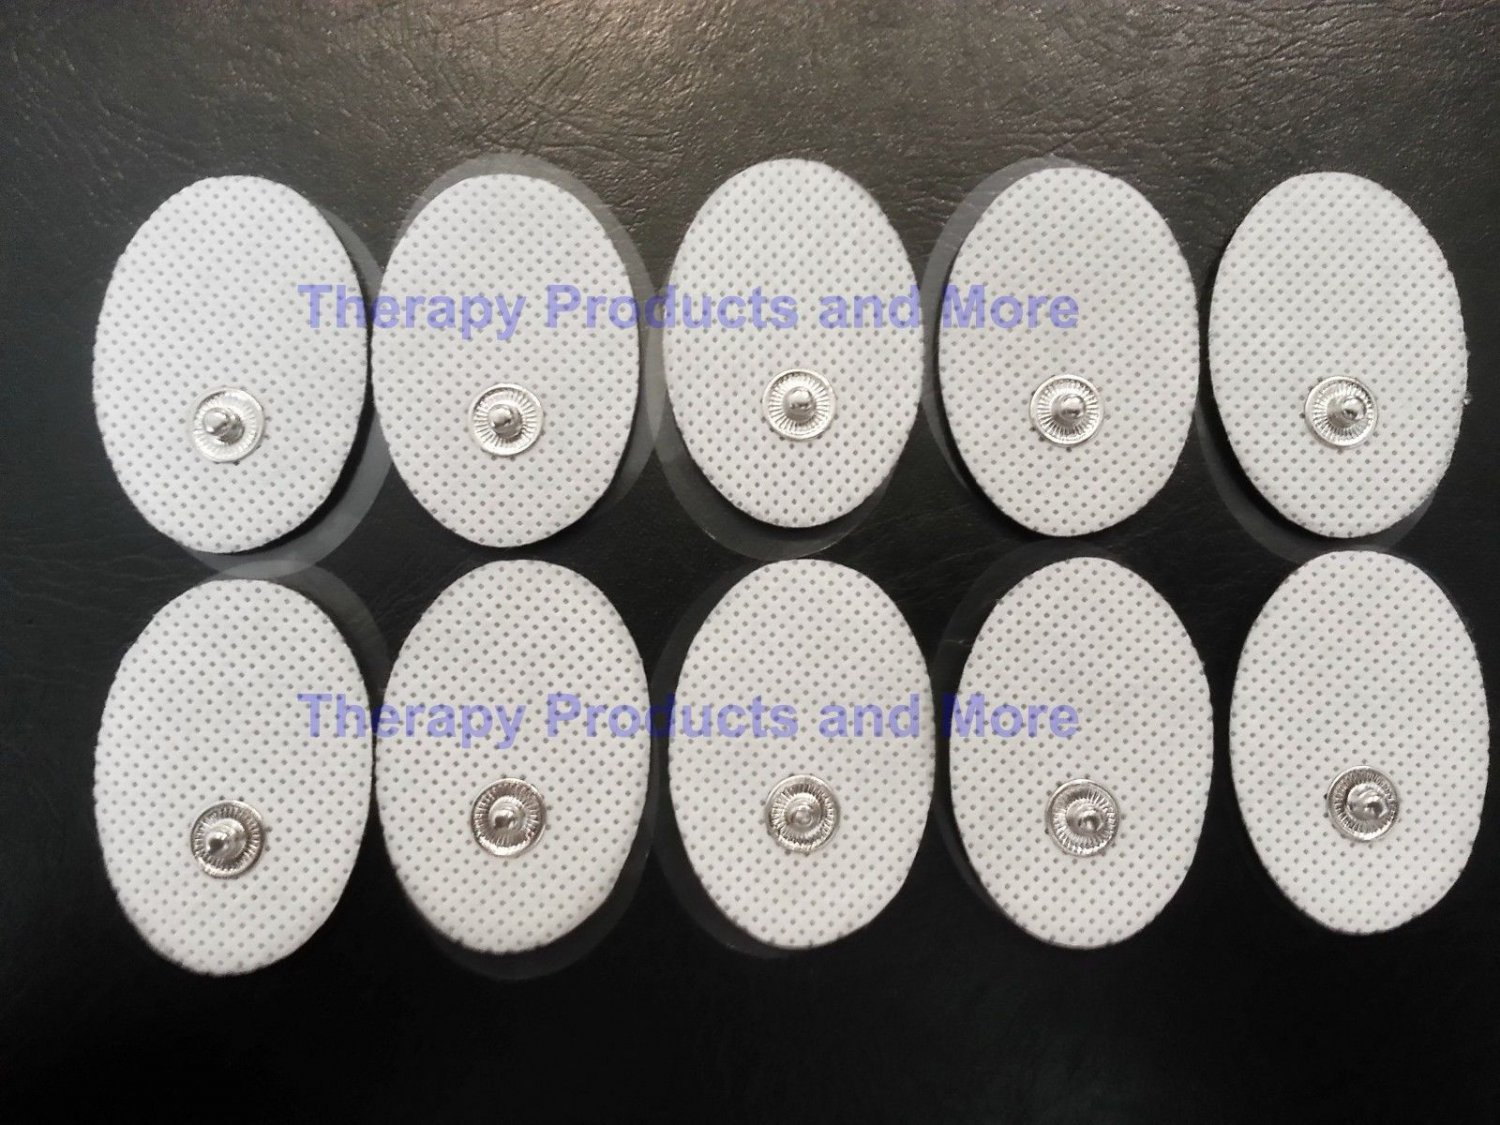 Small Snap-on Electrode Pads (10) for Digital Massage/TENS/Electronic Massager